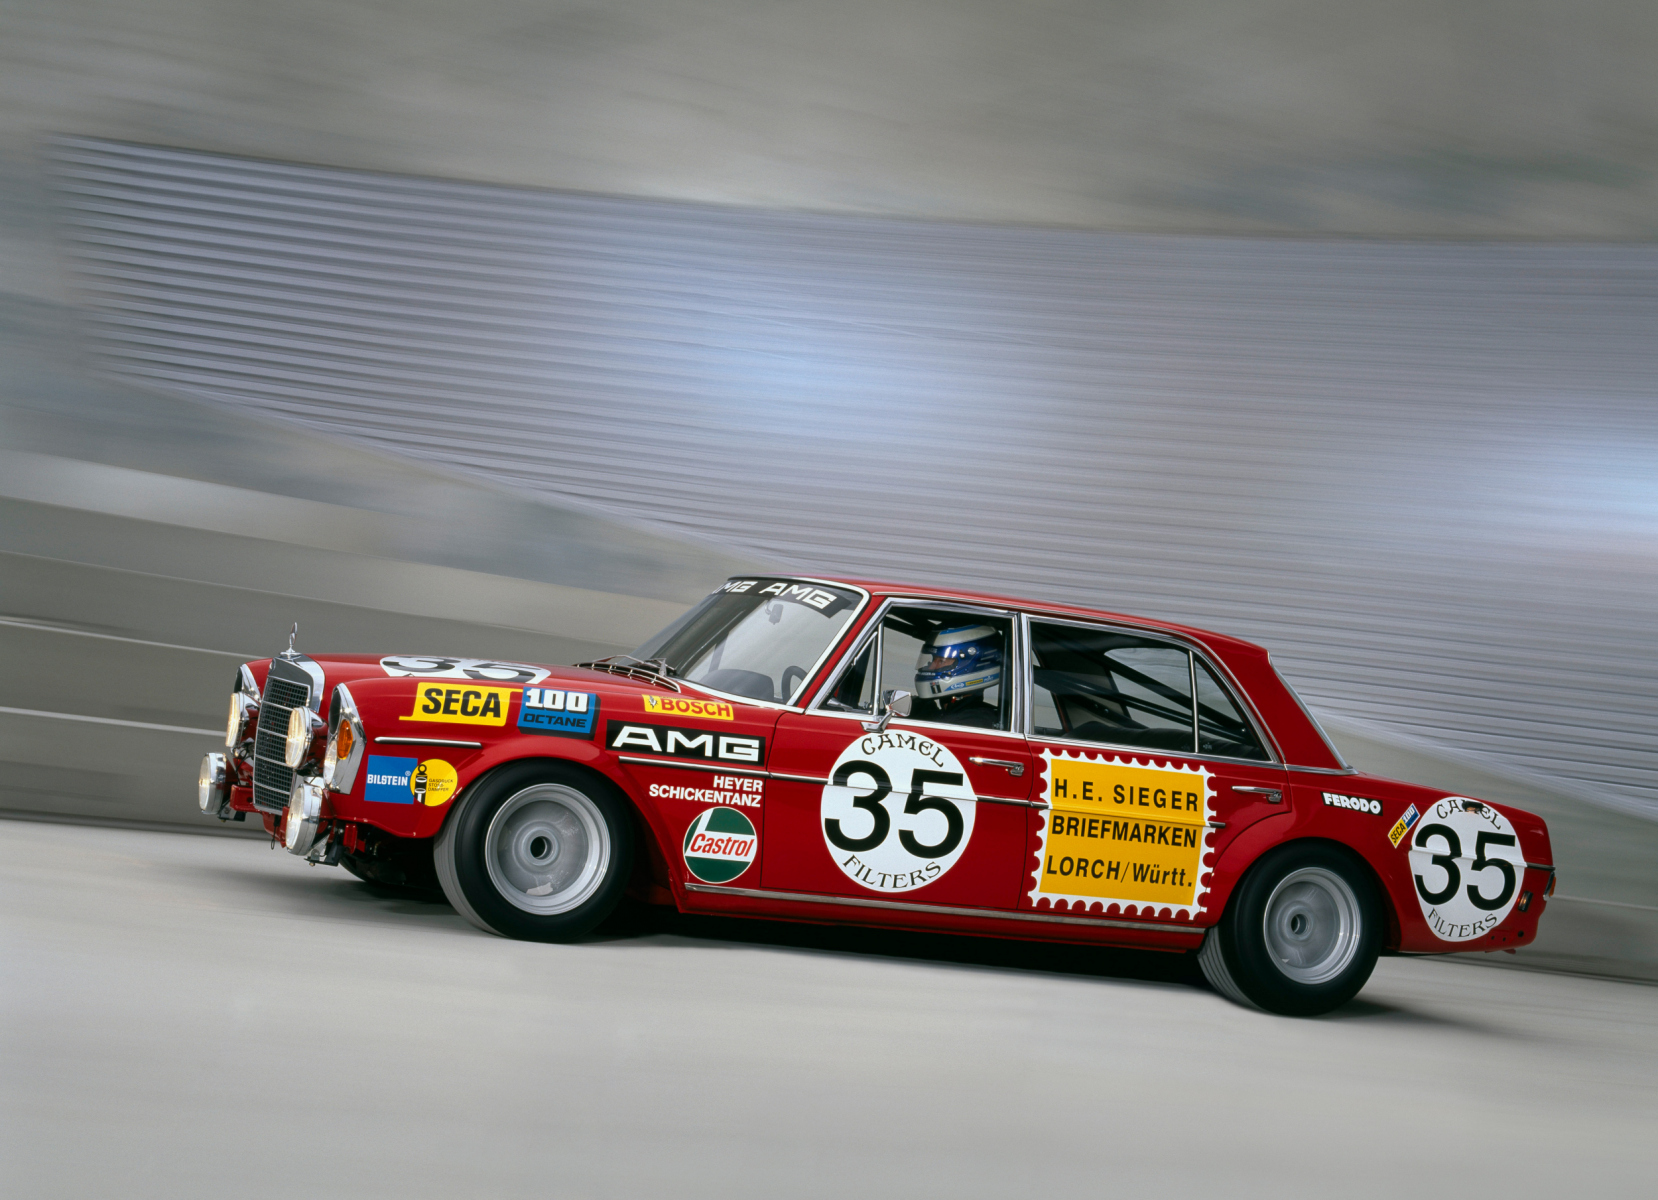 AMG 300 SEL 6.8 racing touring car based on the Mercedes-Benz 300 SEL 6.3 (W 109) luxury saloon, detailed reconstruction from 2006. Moving vehicle shot from 2006.